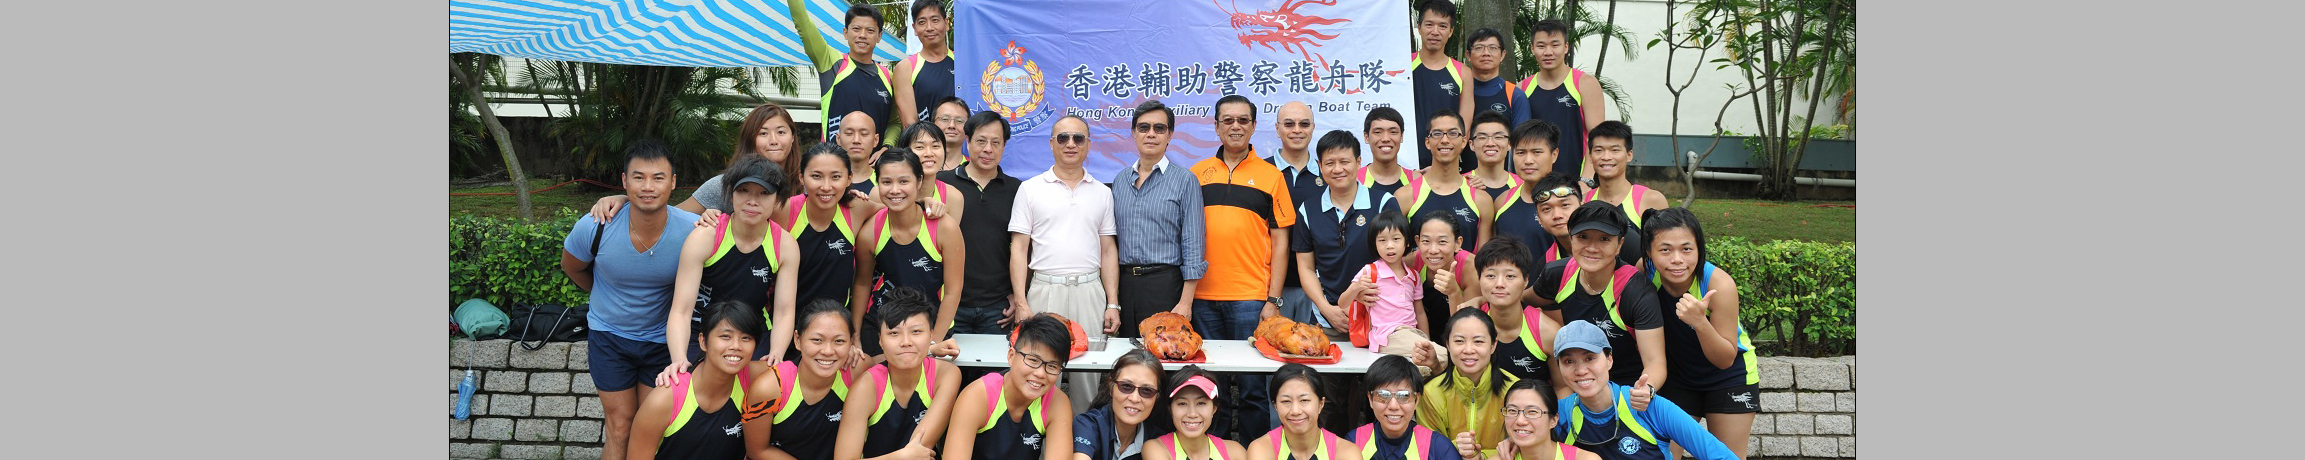 HKAP Dragon Boat Team at the Shatin Shing Mun River Opens